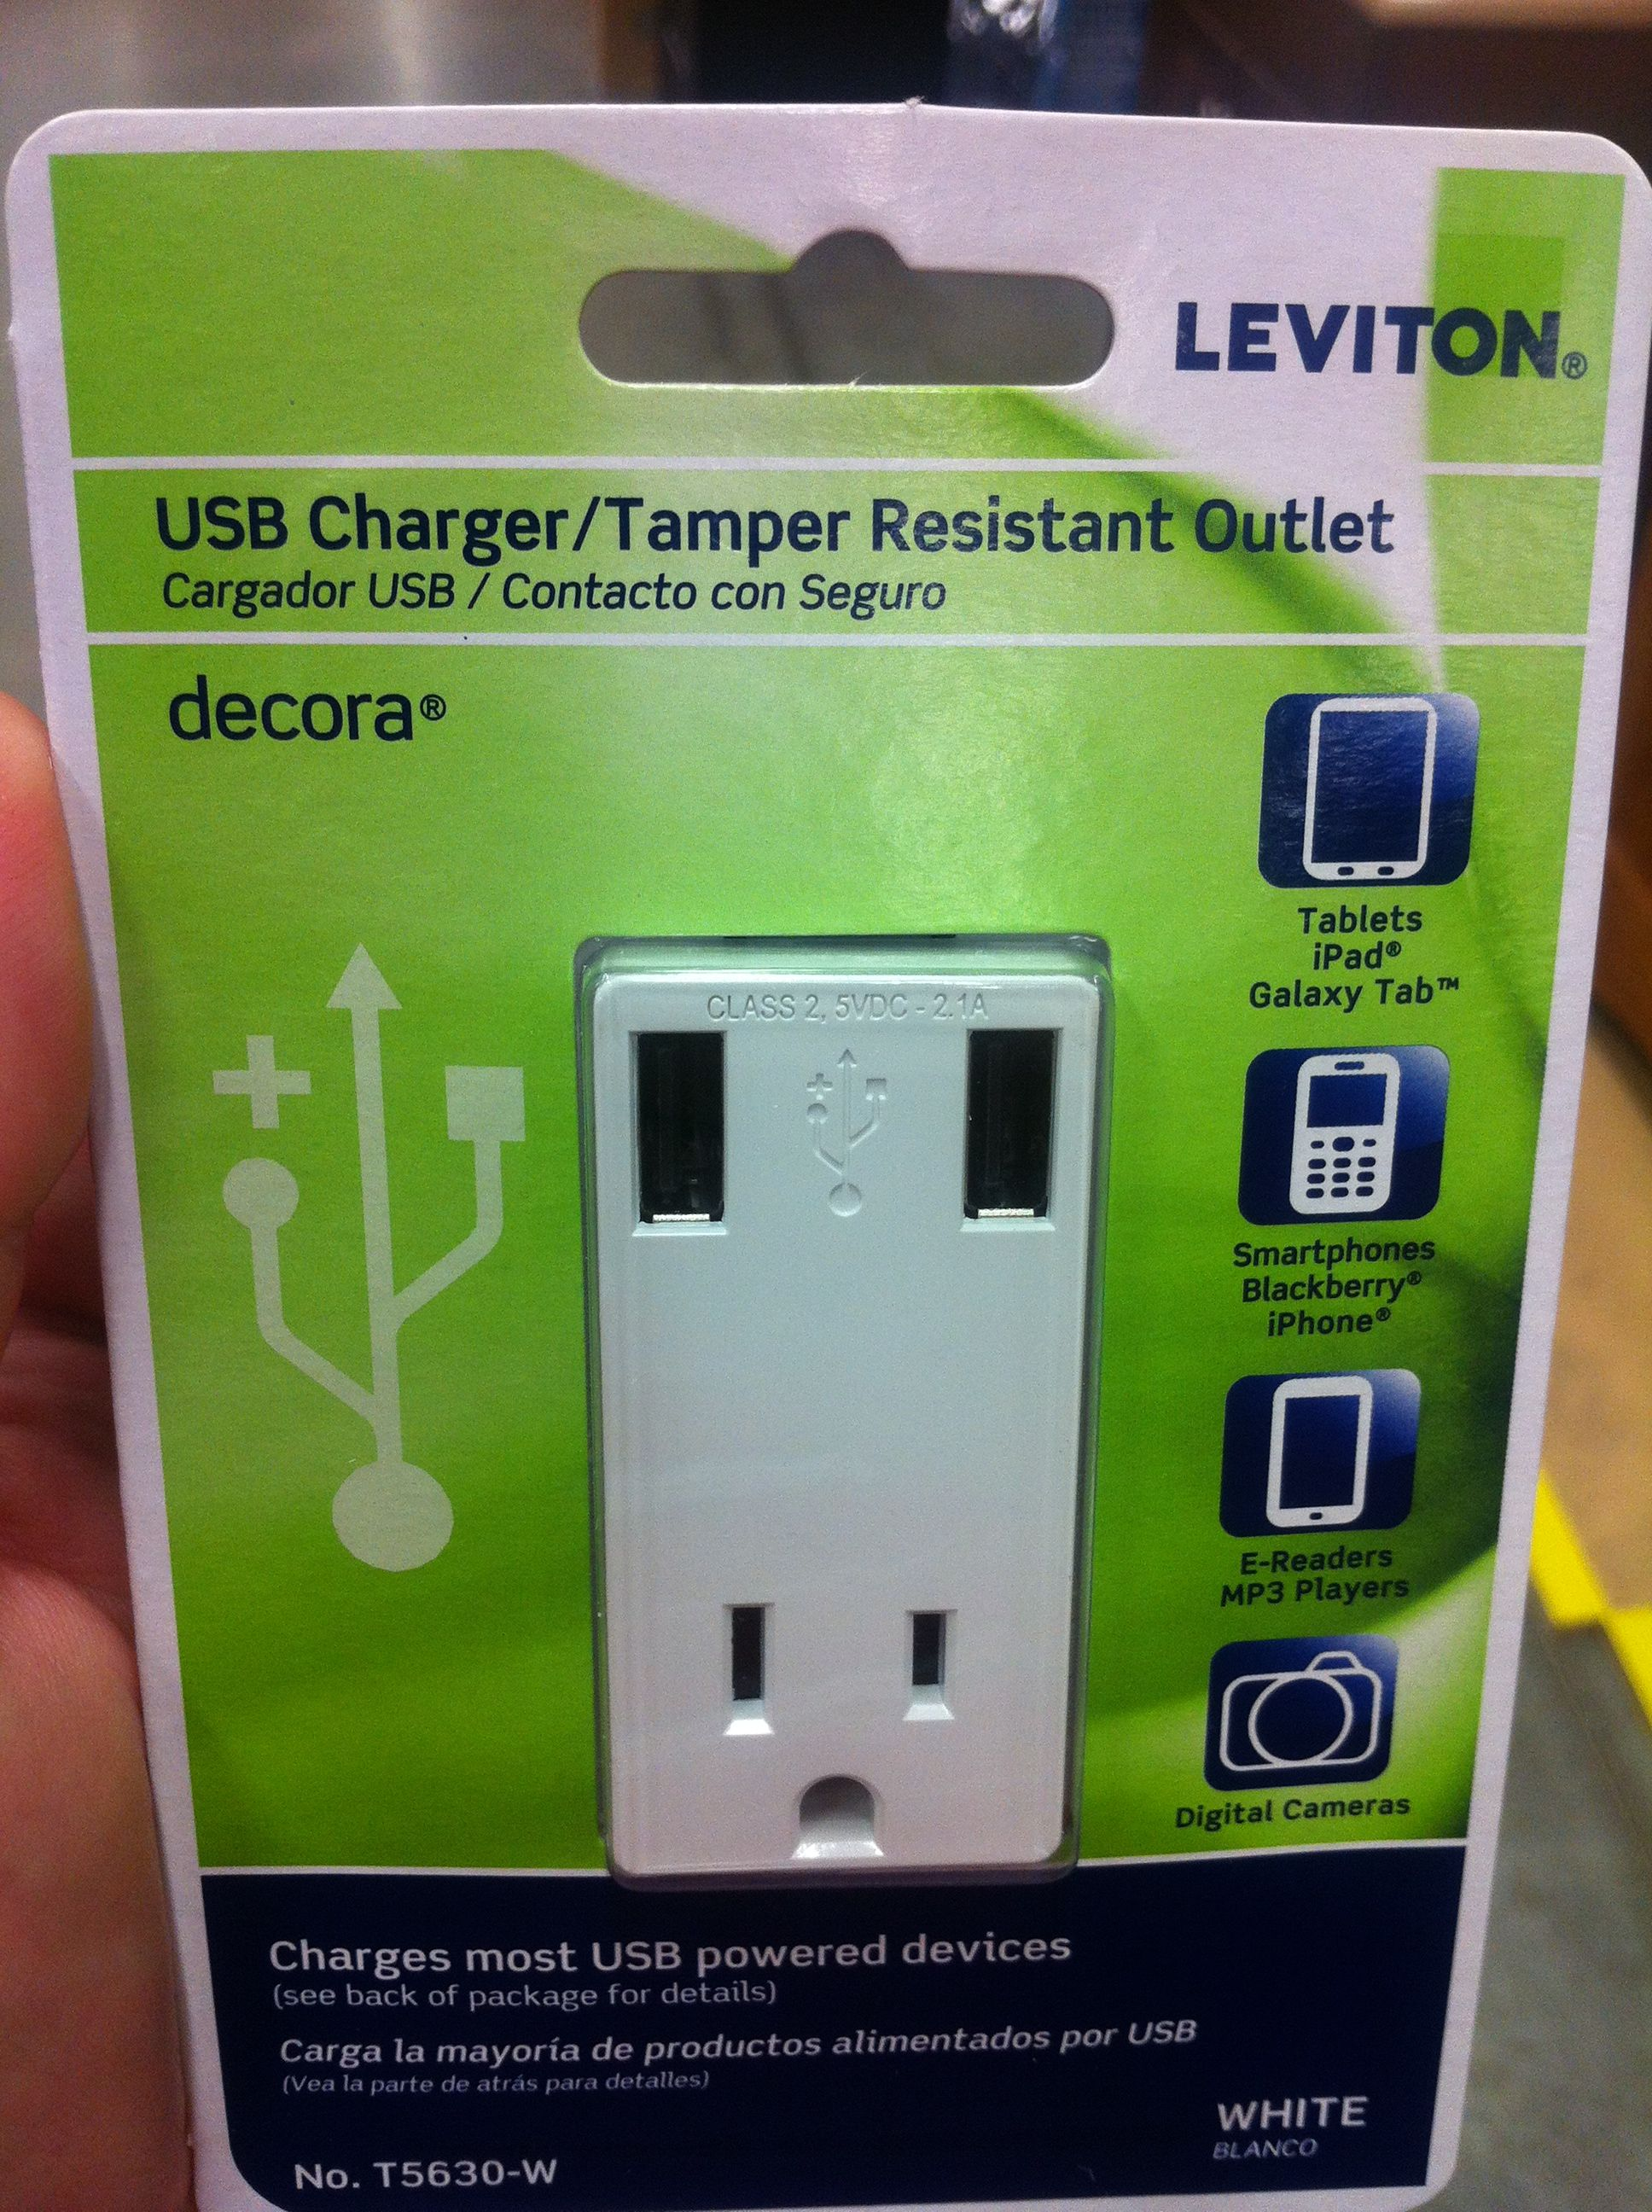 Usb Charger Tamper Resistant Outlet For Decora Style Receptacle Wiring Conduit Home Depot Made By Leviton No T5630 W 21a 15a 125v Combo Can Charge Two Devices Simultaneously Picked It Up At